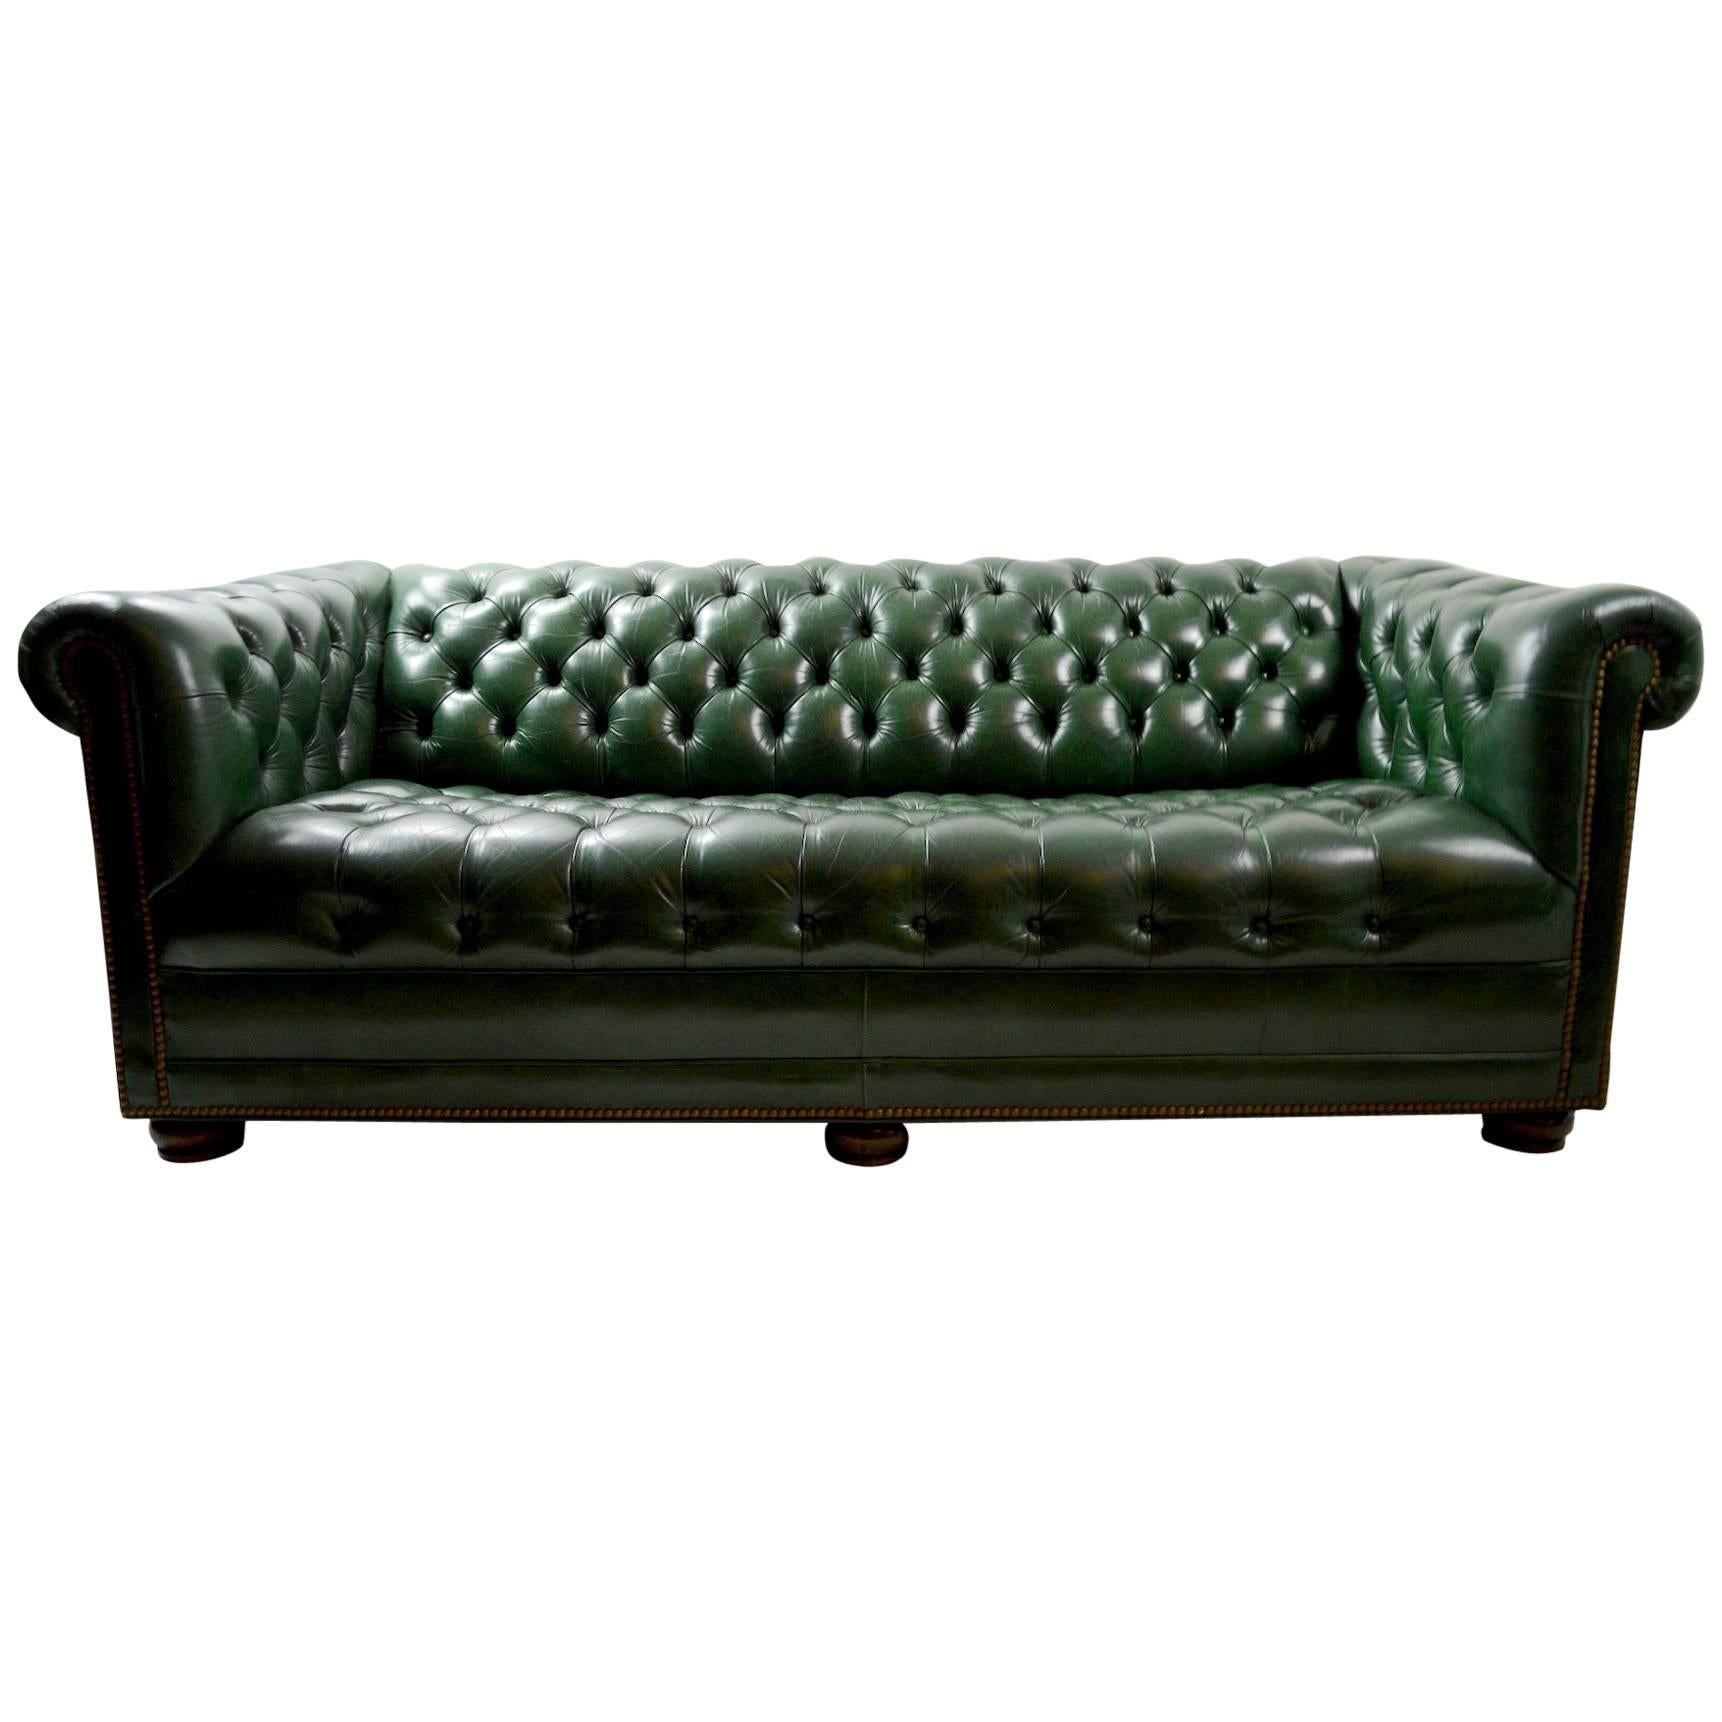 Merveilleux Leather Chesterfield Sofa By Hancock And Moore For Sale